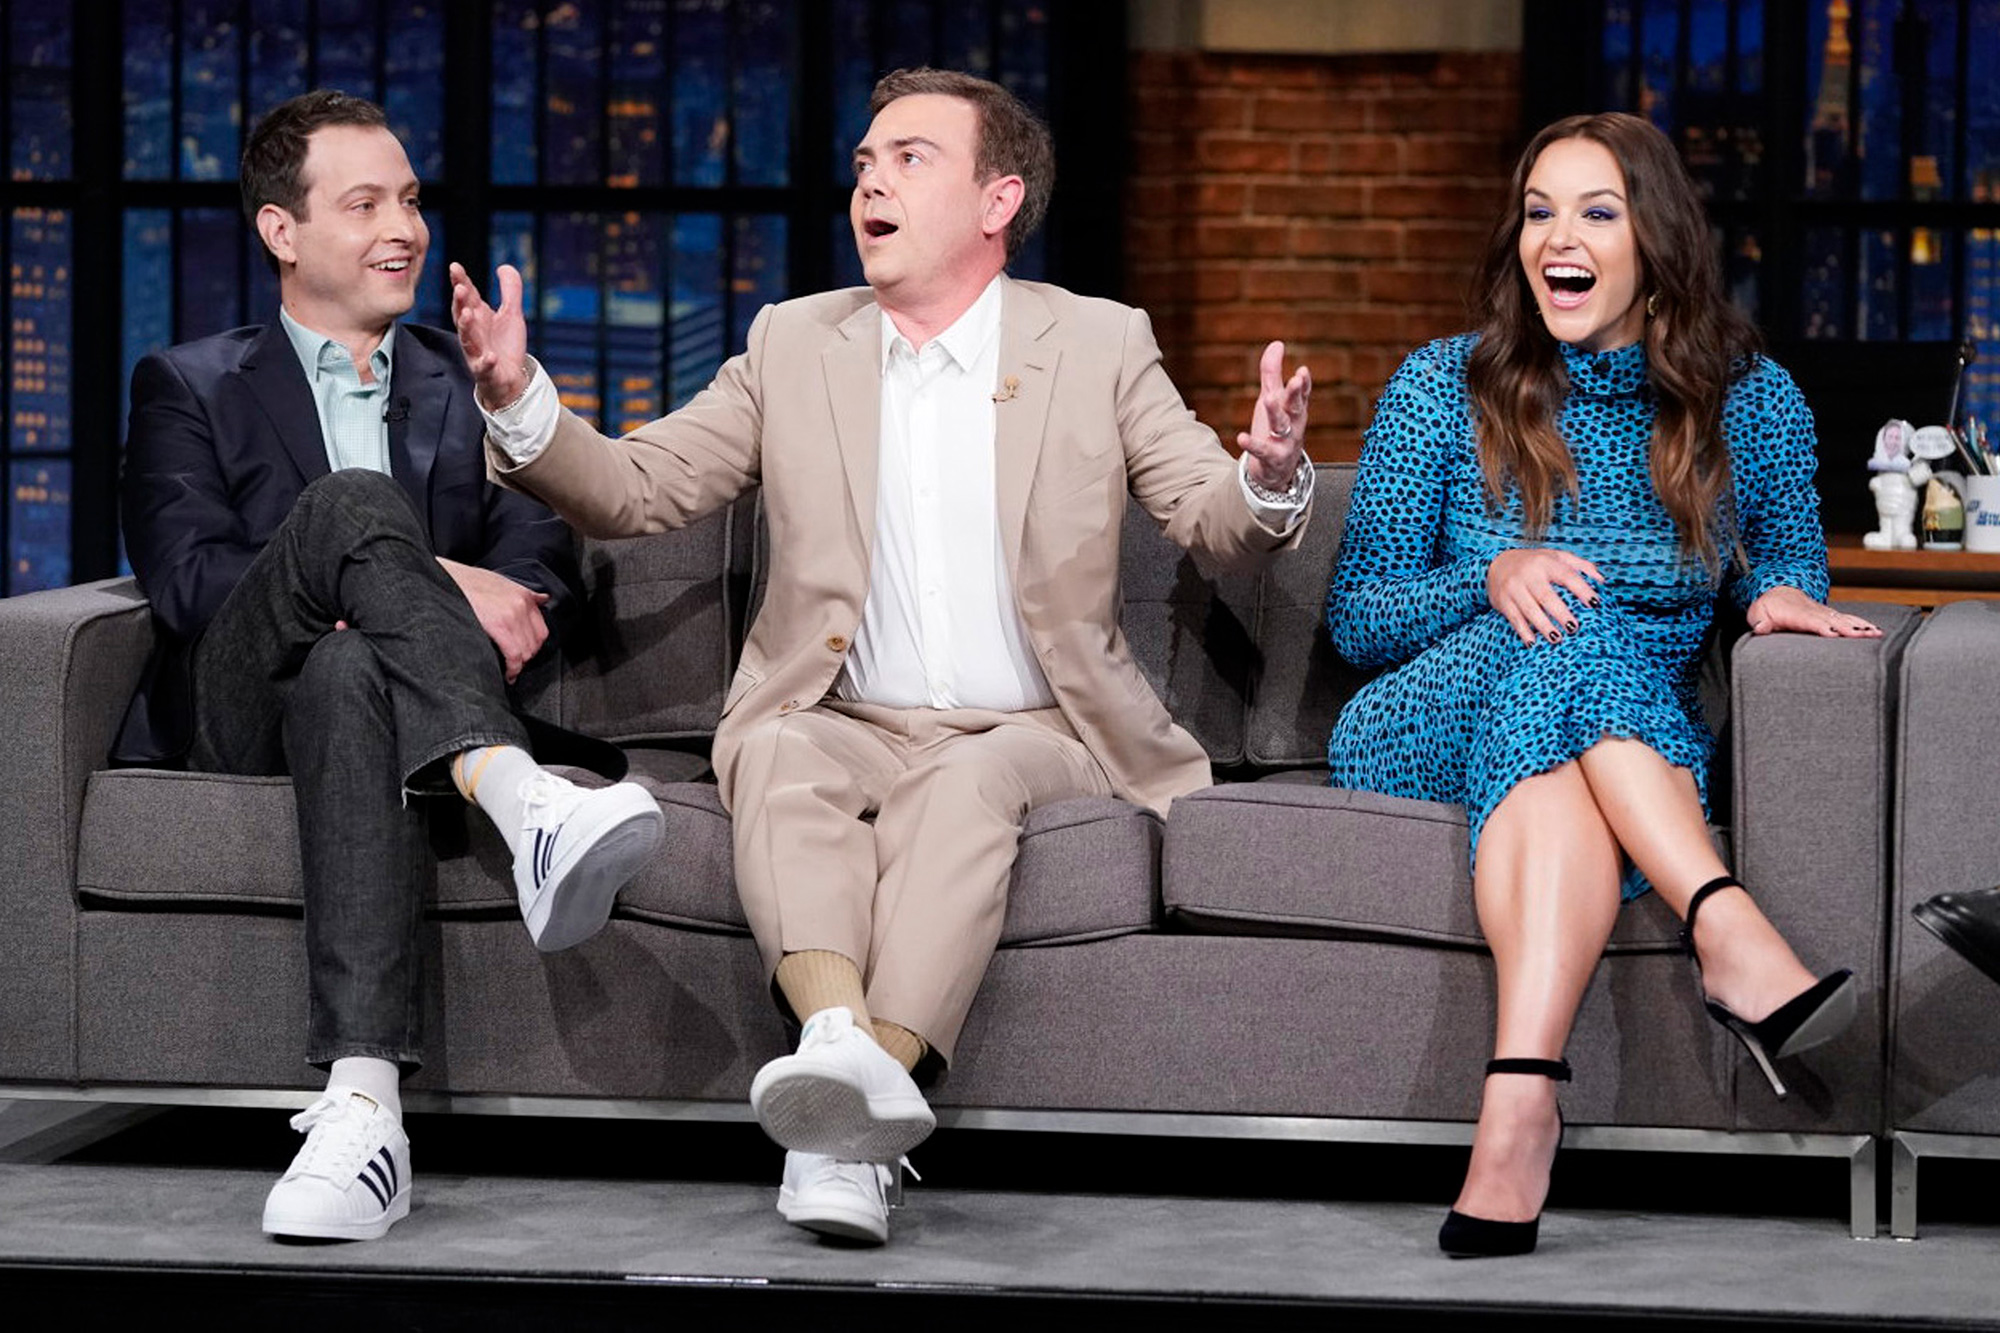 LATE NIGHT WITH SETH MEYERS -- Episode 1193A -- Pictured: (l-r) Brooklyn 99 co-creator Dan Goor and cast members Joe Lo Truglio and Melissa Fumero during an interview with host Seth Meyers on September 16, 2021